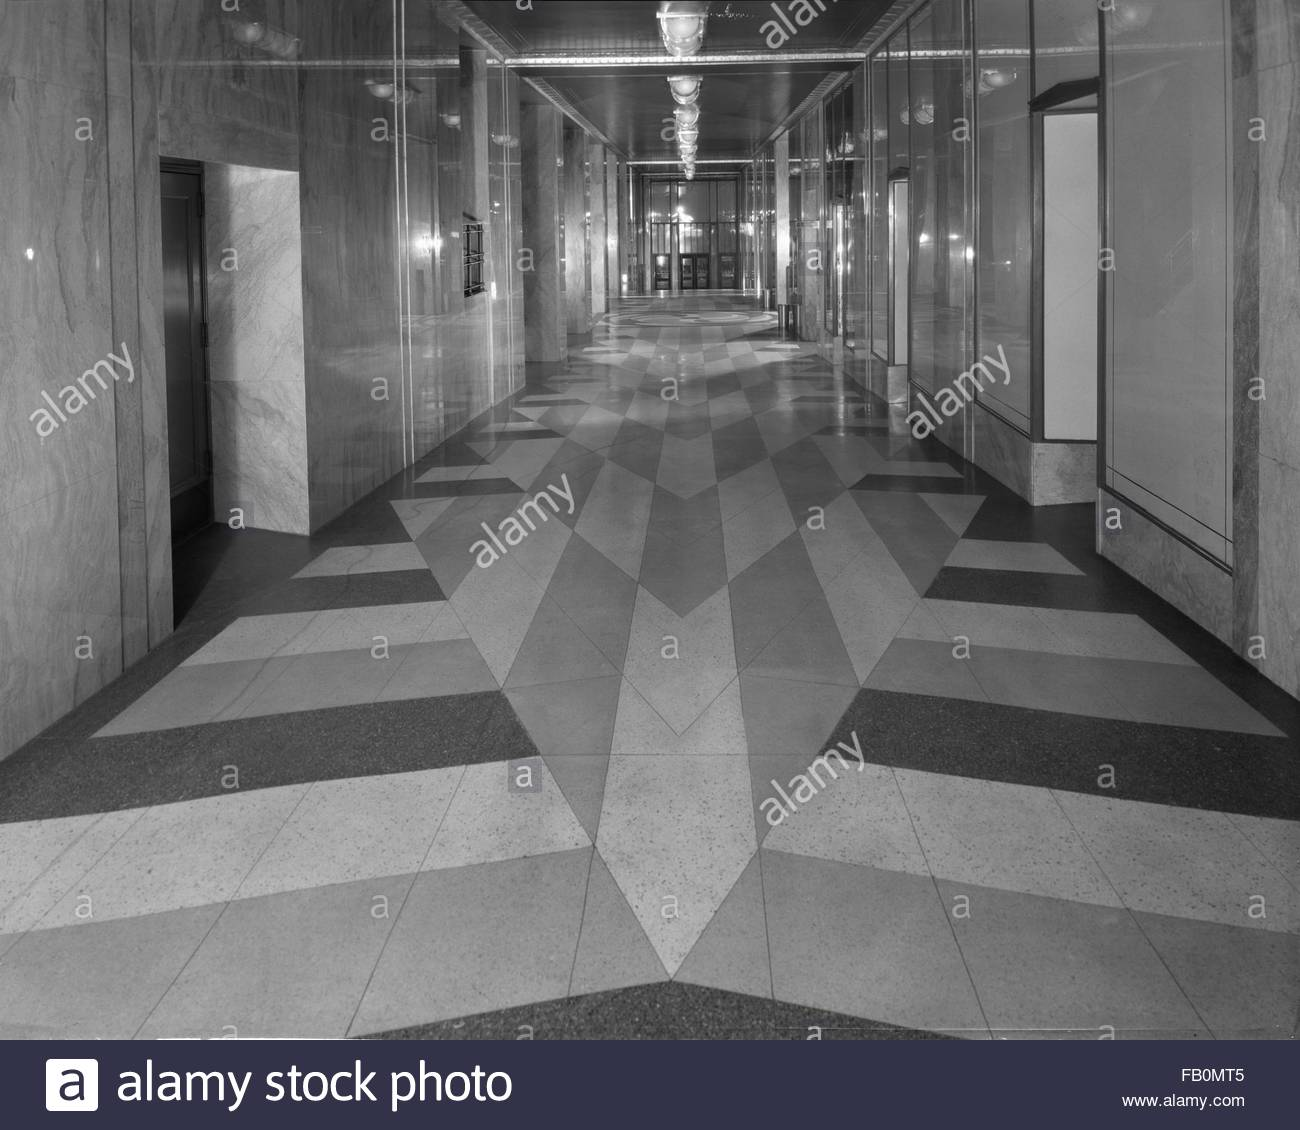 Pretty 16 Inch Ceiling Tiles Small 2 X 12 Ceramic Tile Clean 20X20 Ceramic Tile 2X4 Ceiling Tiles Home Depot Young 6 X 6 Ceramic Wall Tile Purple8X8 White Floor Tile Tile And Terrazzo Flooring And Hallways. Hallways In Michigan ..